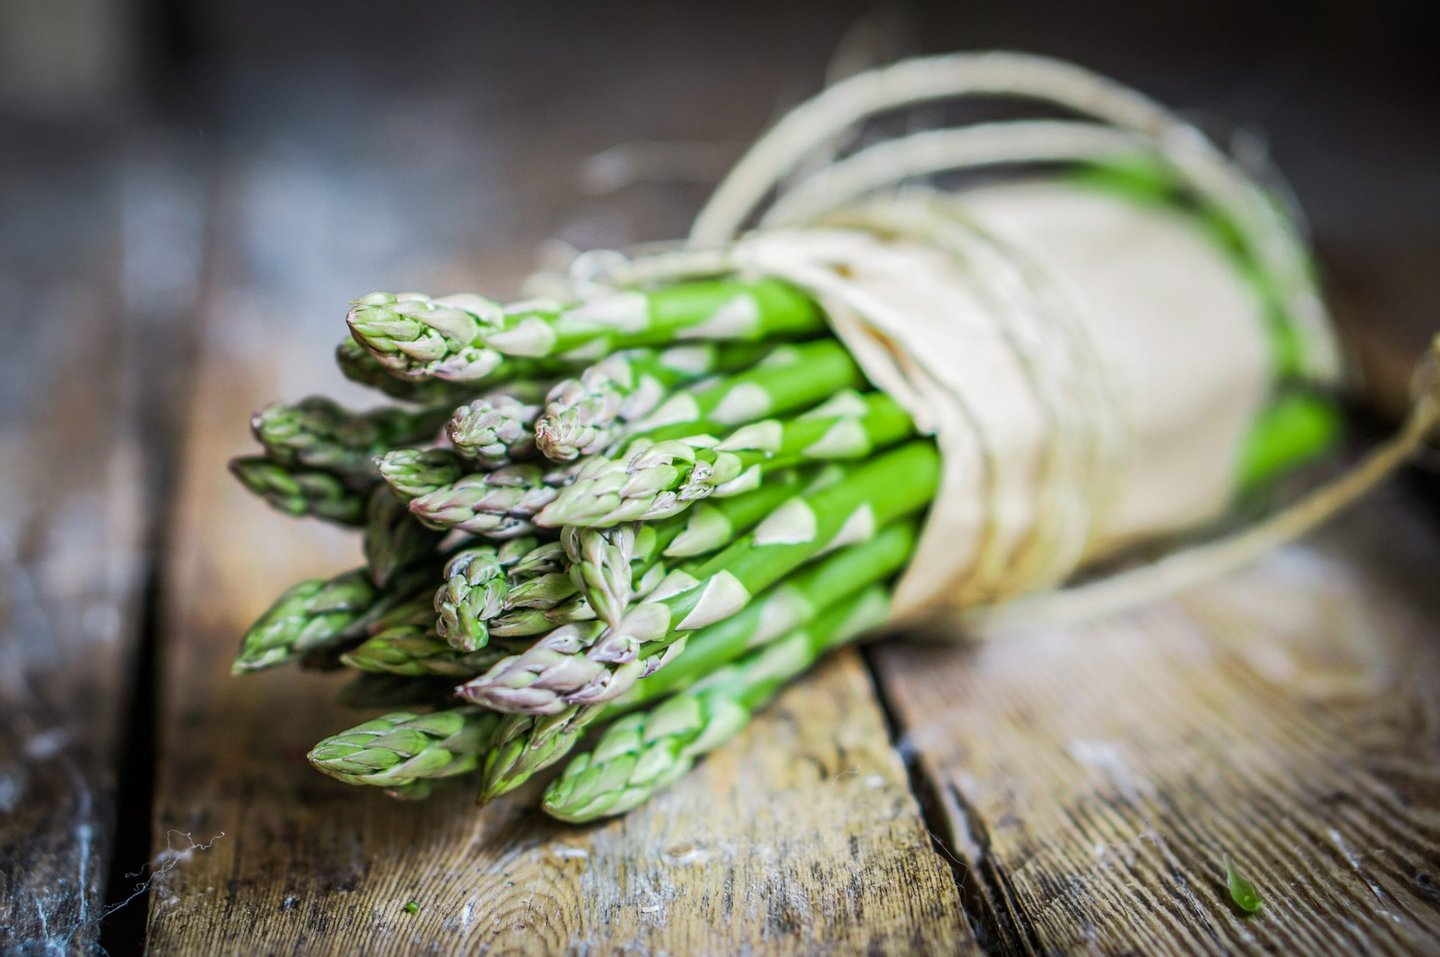 Asparagus, Backgrounds, Close-up, Cooking, Dieting, Eating, Food, Freshness, Gourmet, Meal, Moving Up, Nature, Organic, Root, Rustic, Salad, Season, Spear, Table, Vegetable, Vegetarian Food, Wood,